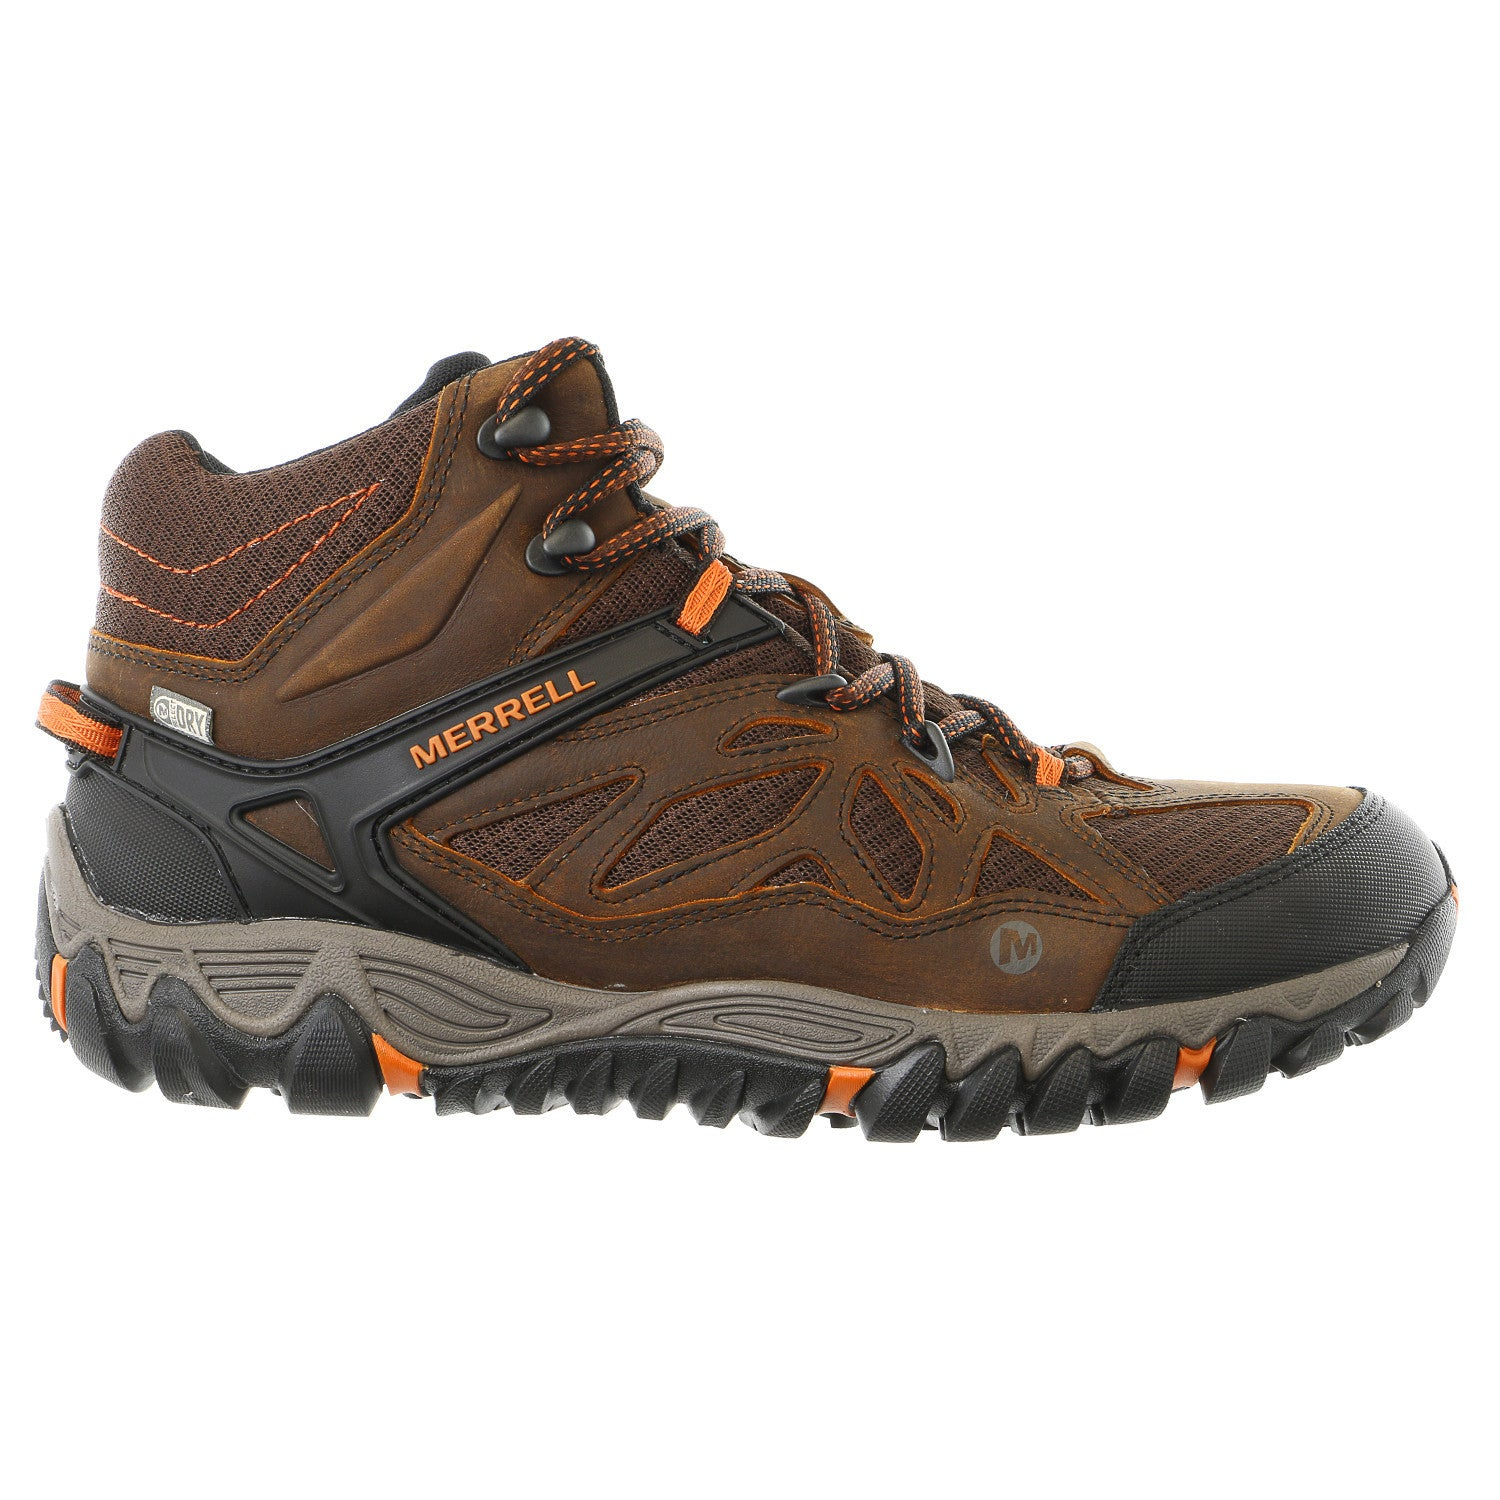 Merrell All Out Blaze Ventilator Mid Waterproof Hiking